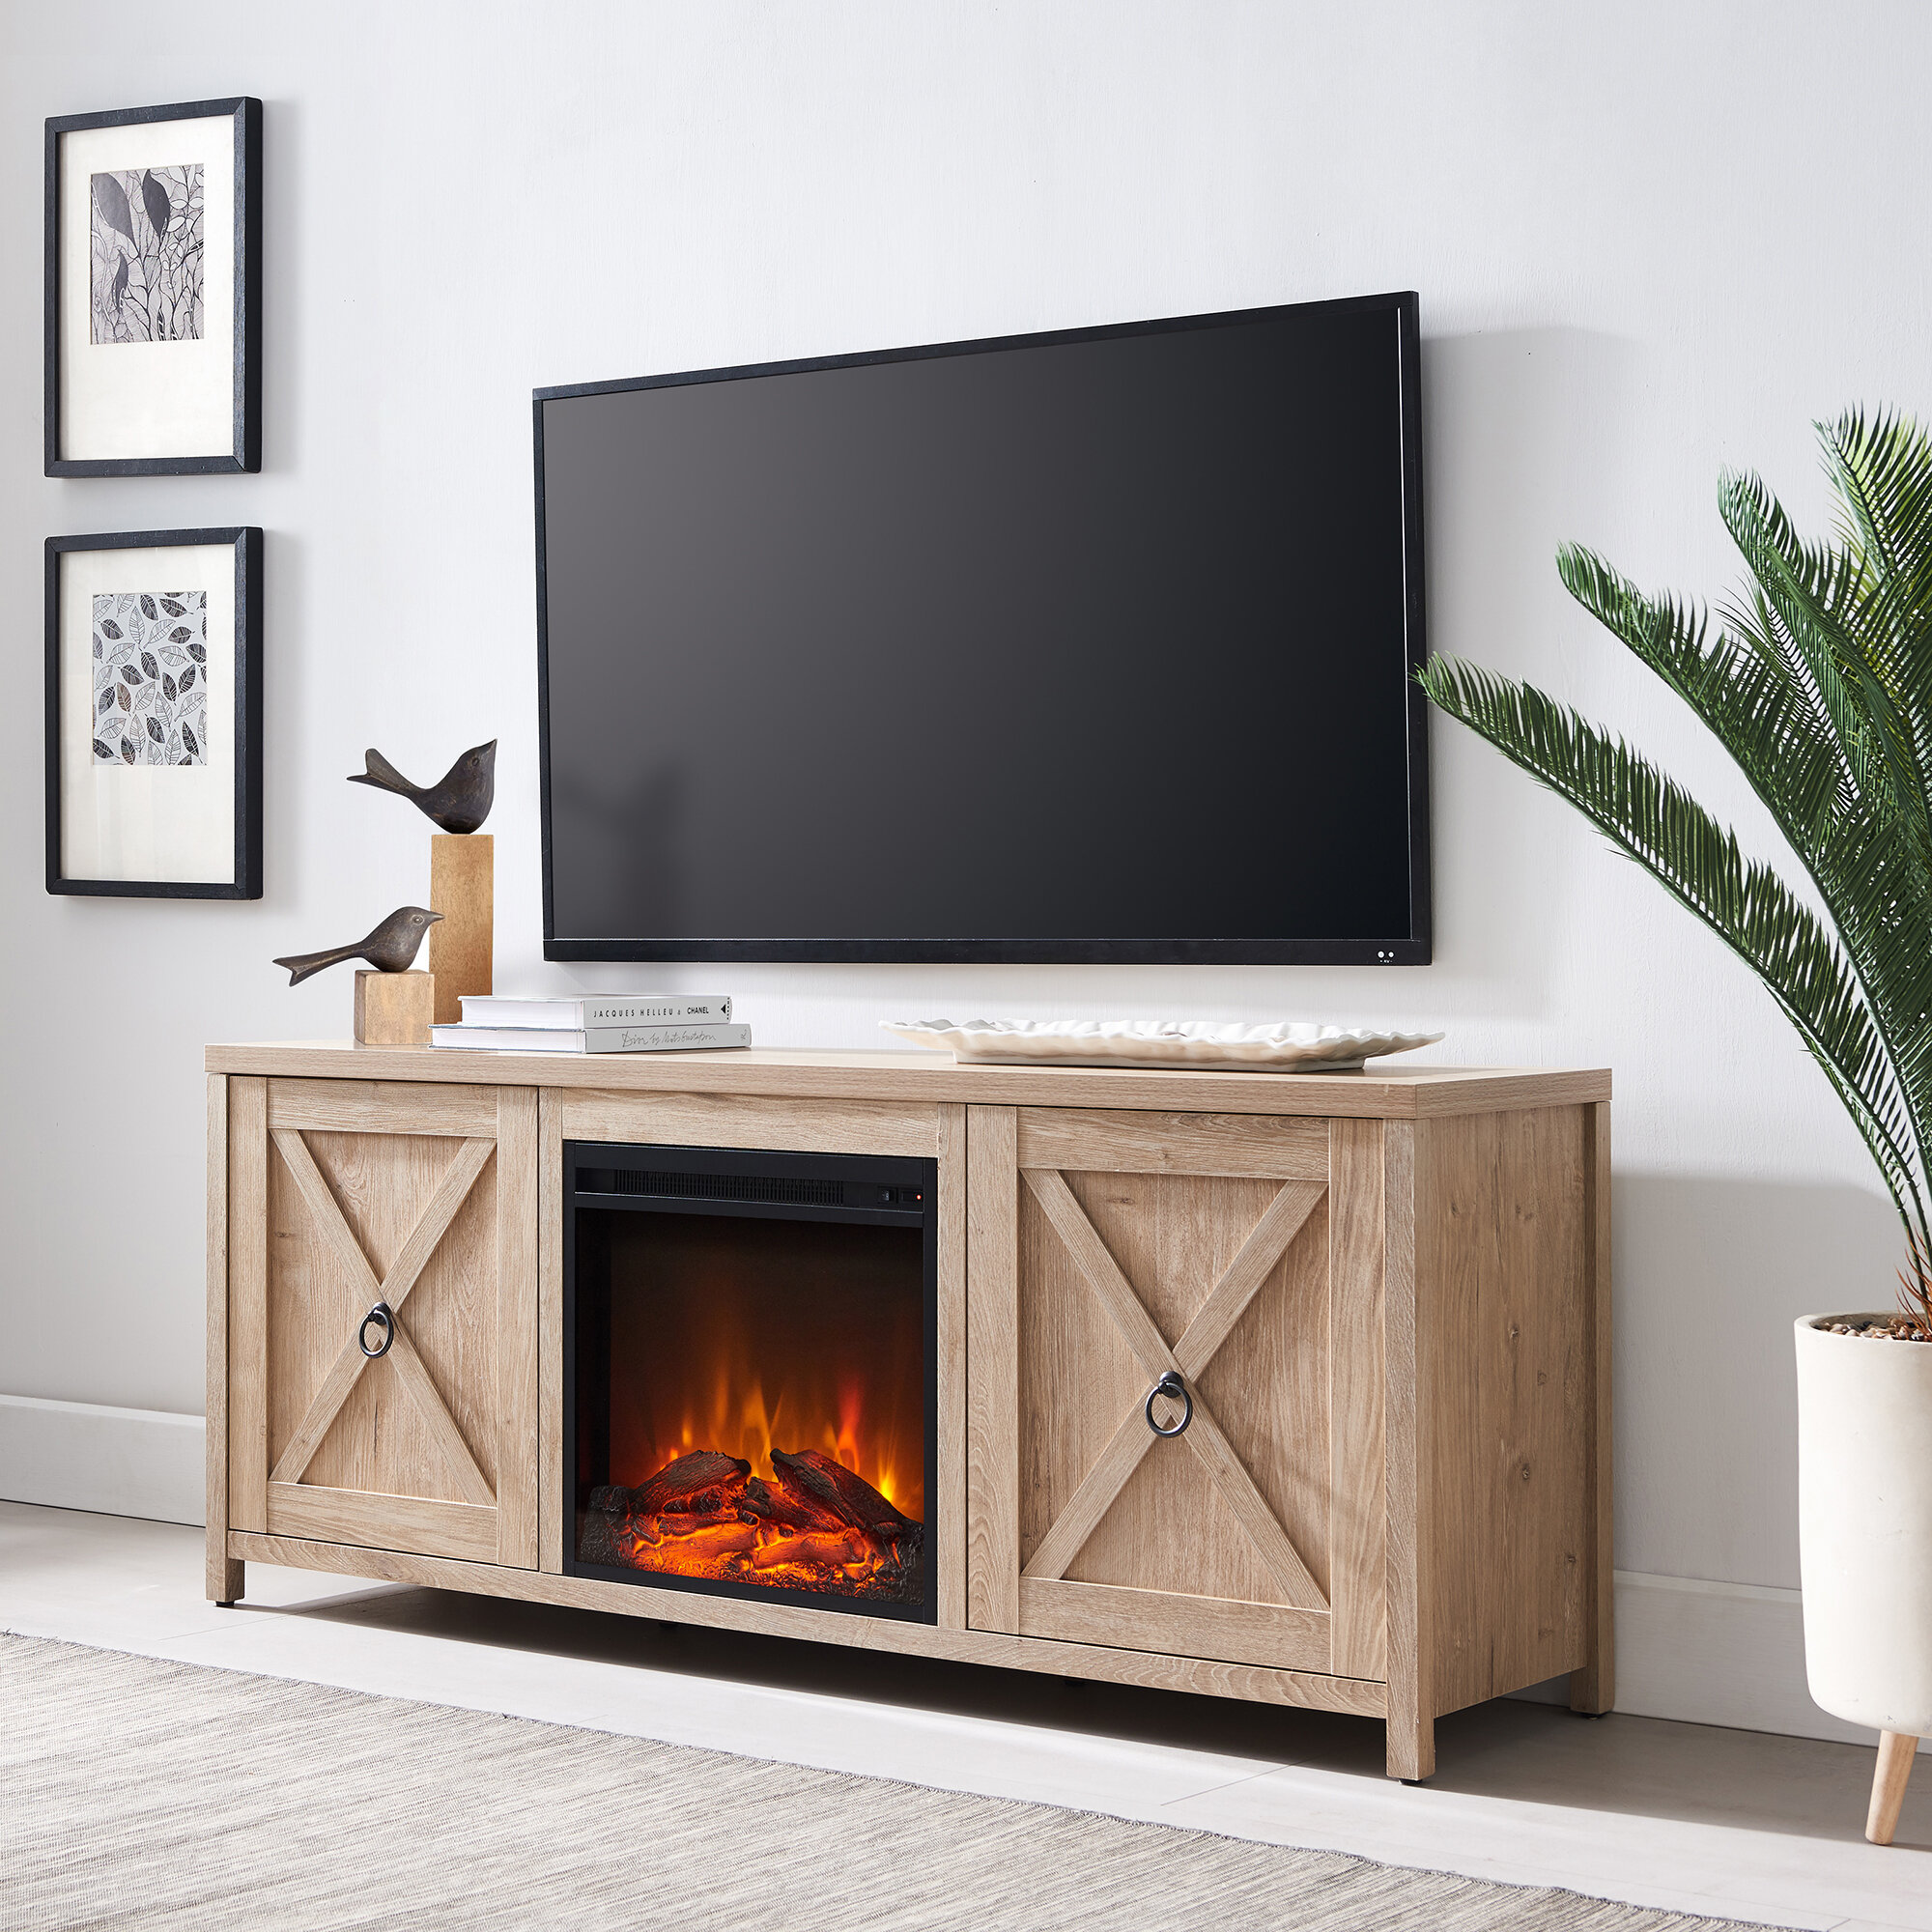 60 69 Inch Fireplace Tv Stands Entertainment Centers You Ll Love In 2021 Wayfair